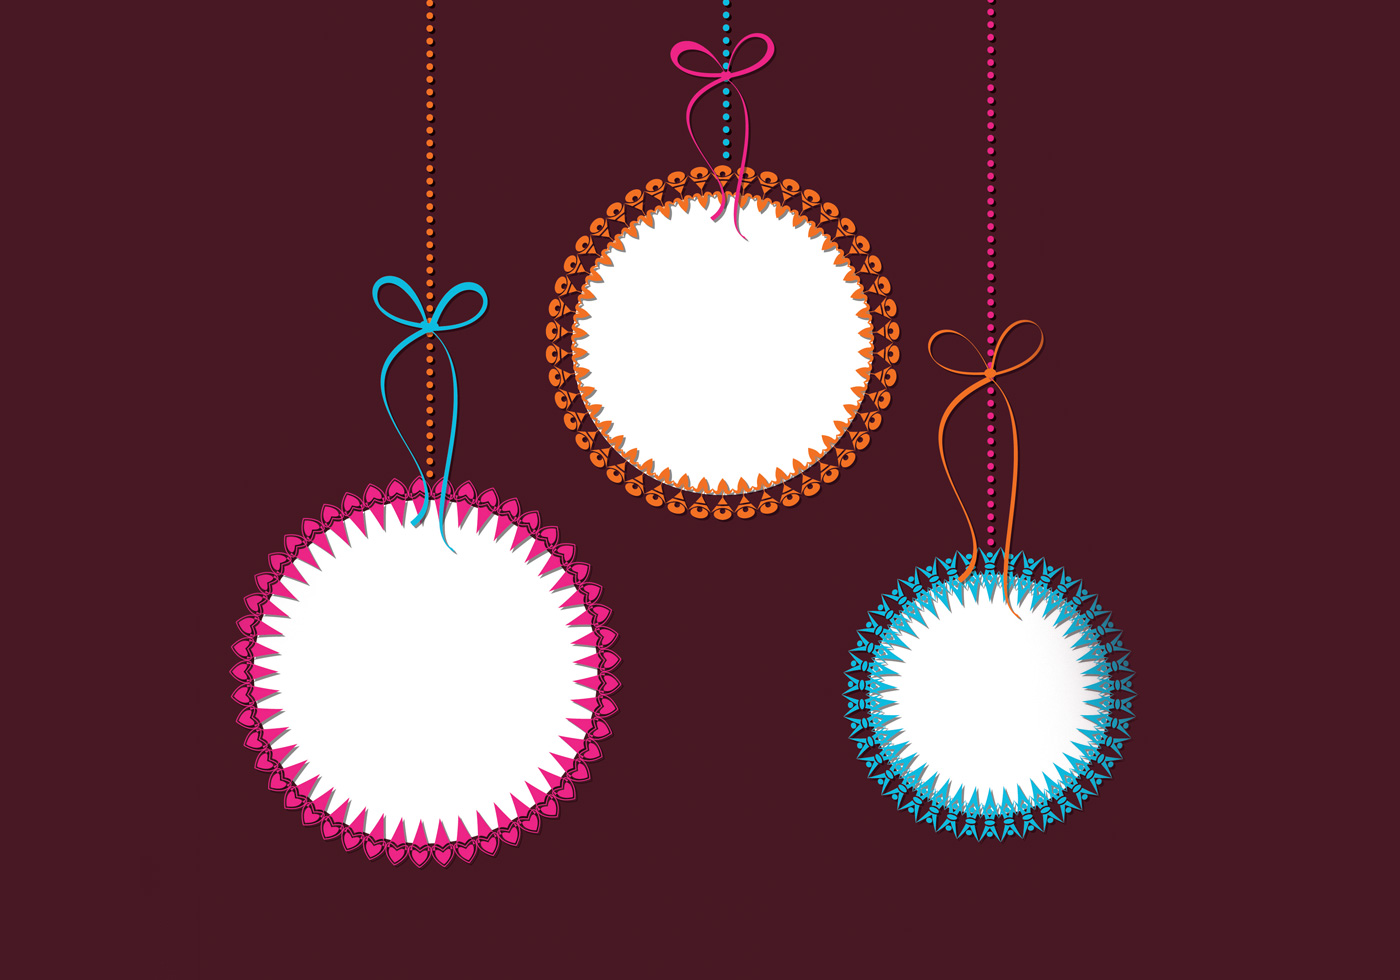 Funky christmas ornament wallpaper free photoshop